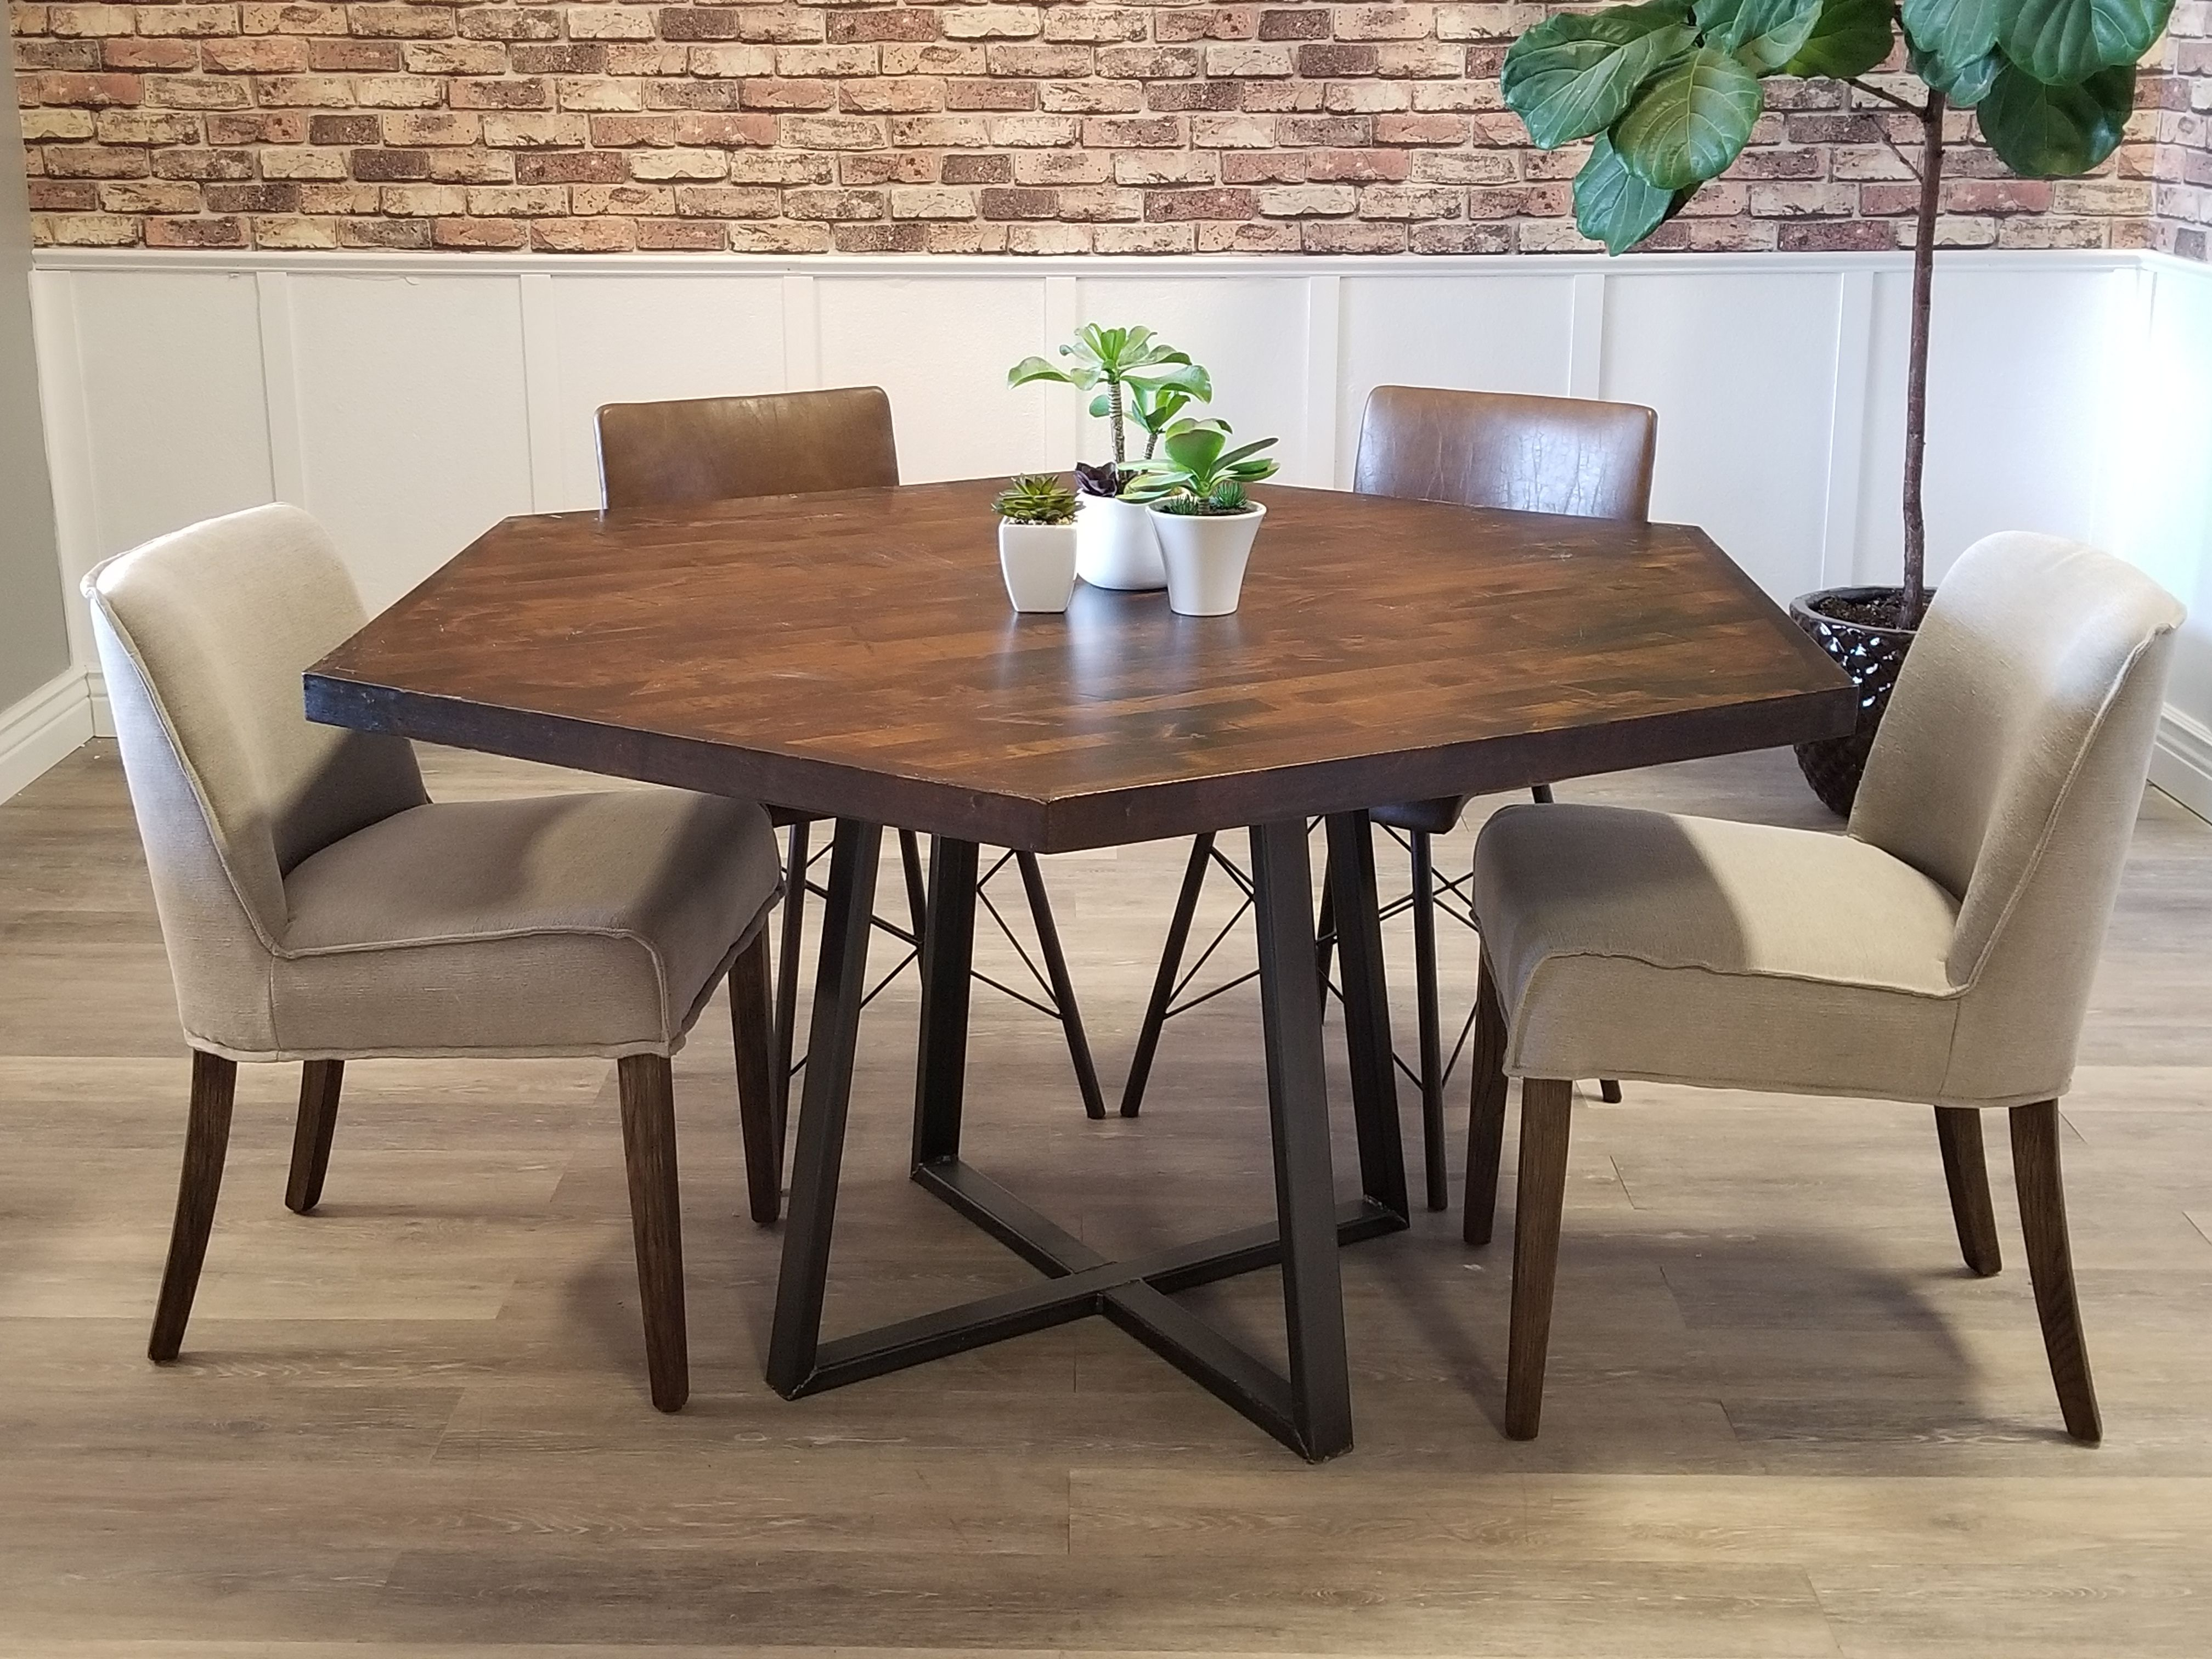 Hexagon Industrial Steel Pedestal Table Dining Table Hexagonal